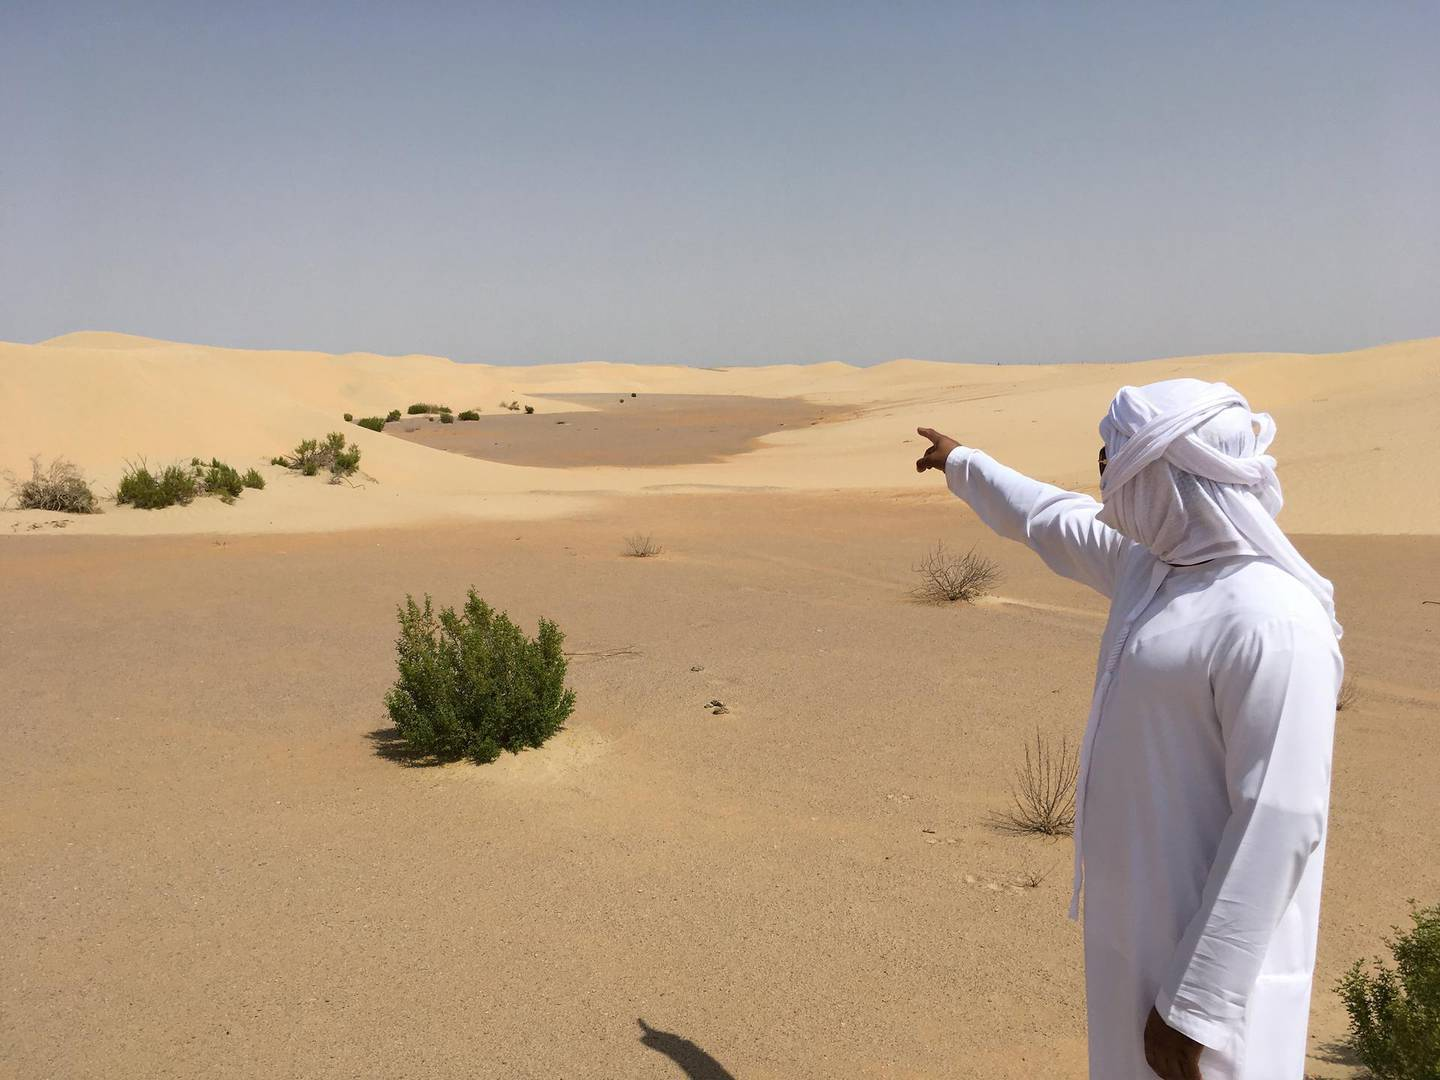 Hosn al Sirra. Omar al Kaabi, from the Department of Culture and Tourism, points the way to Abu Dhabi. Photo credit: Tim Power.